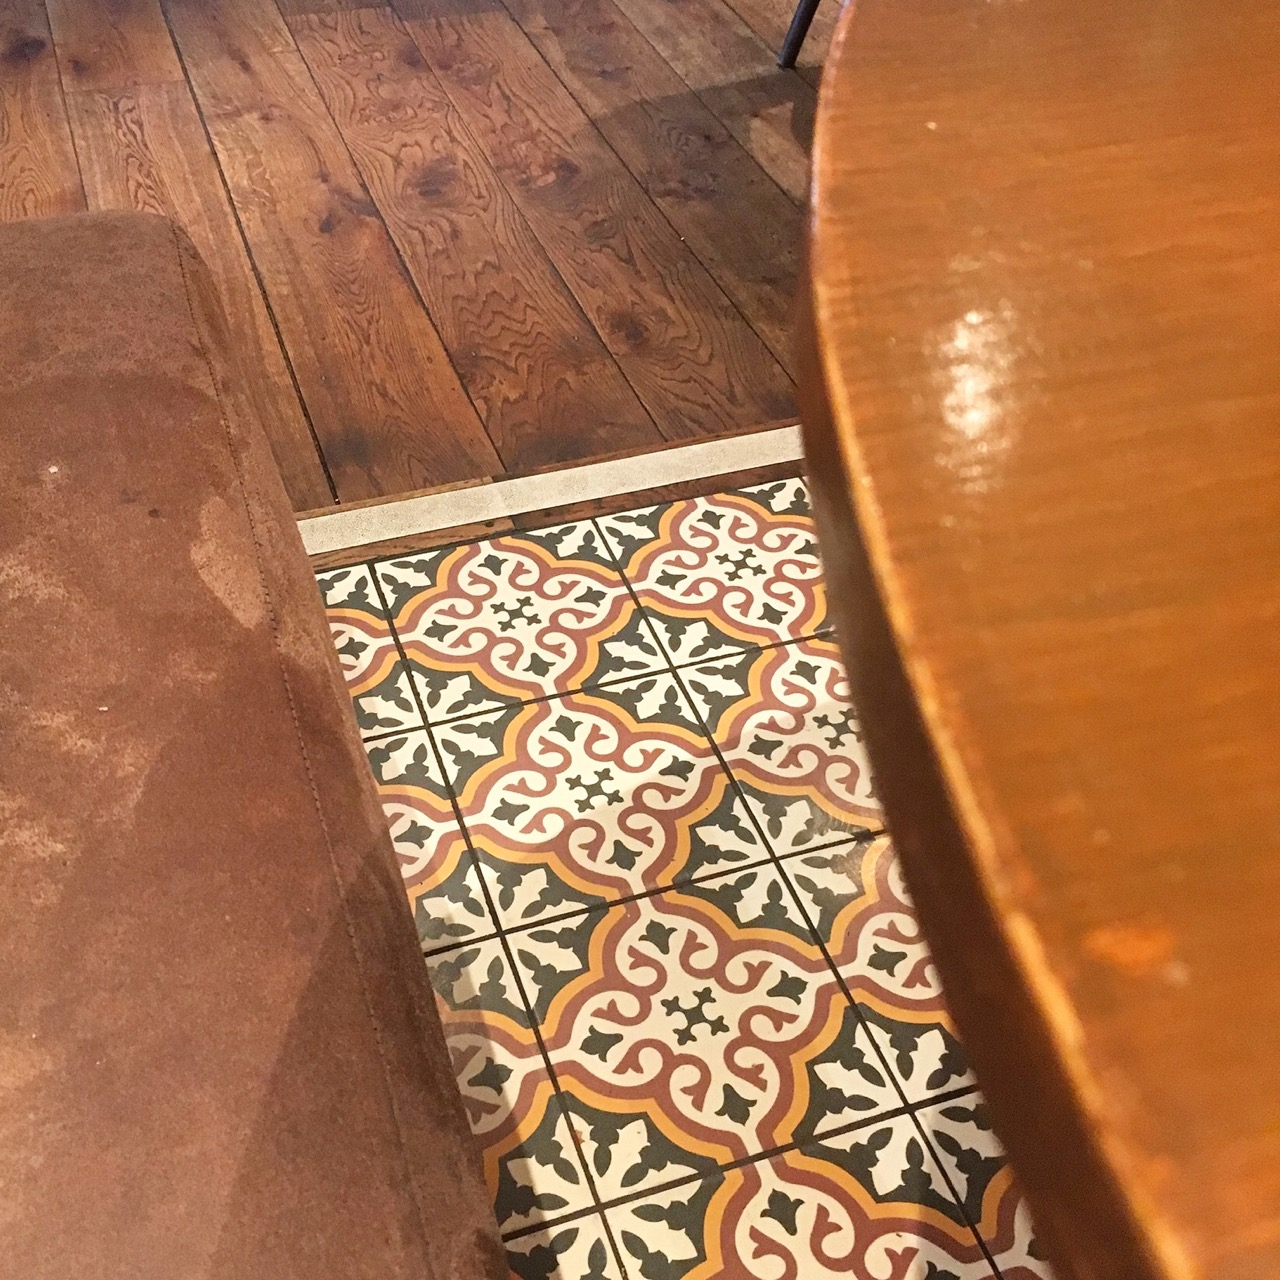 Seating, tiled floors and our table at the Curious Pig